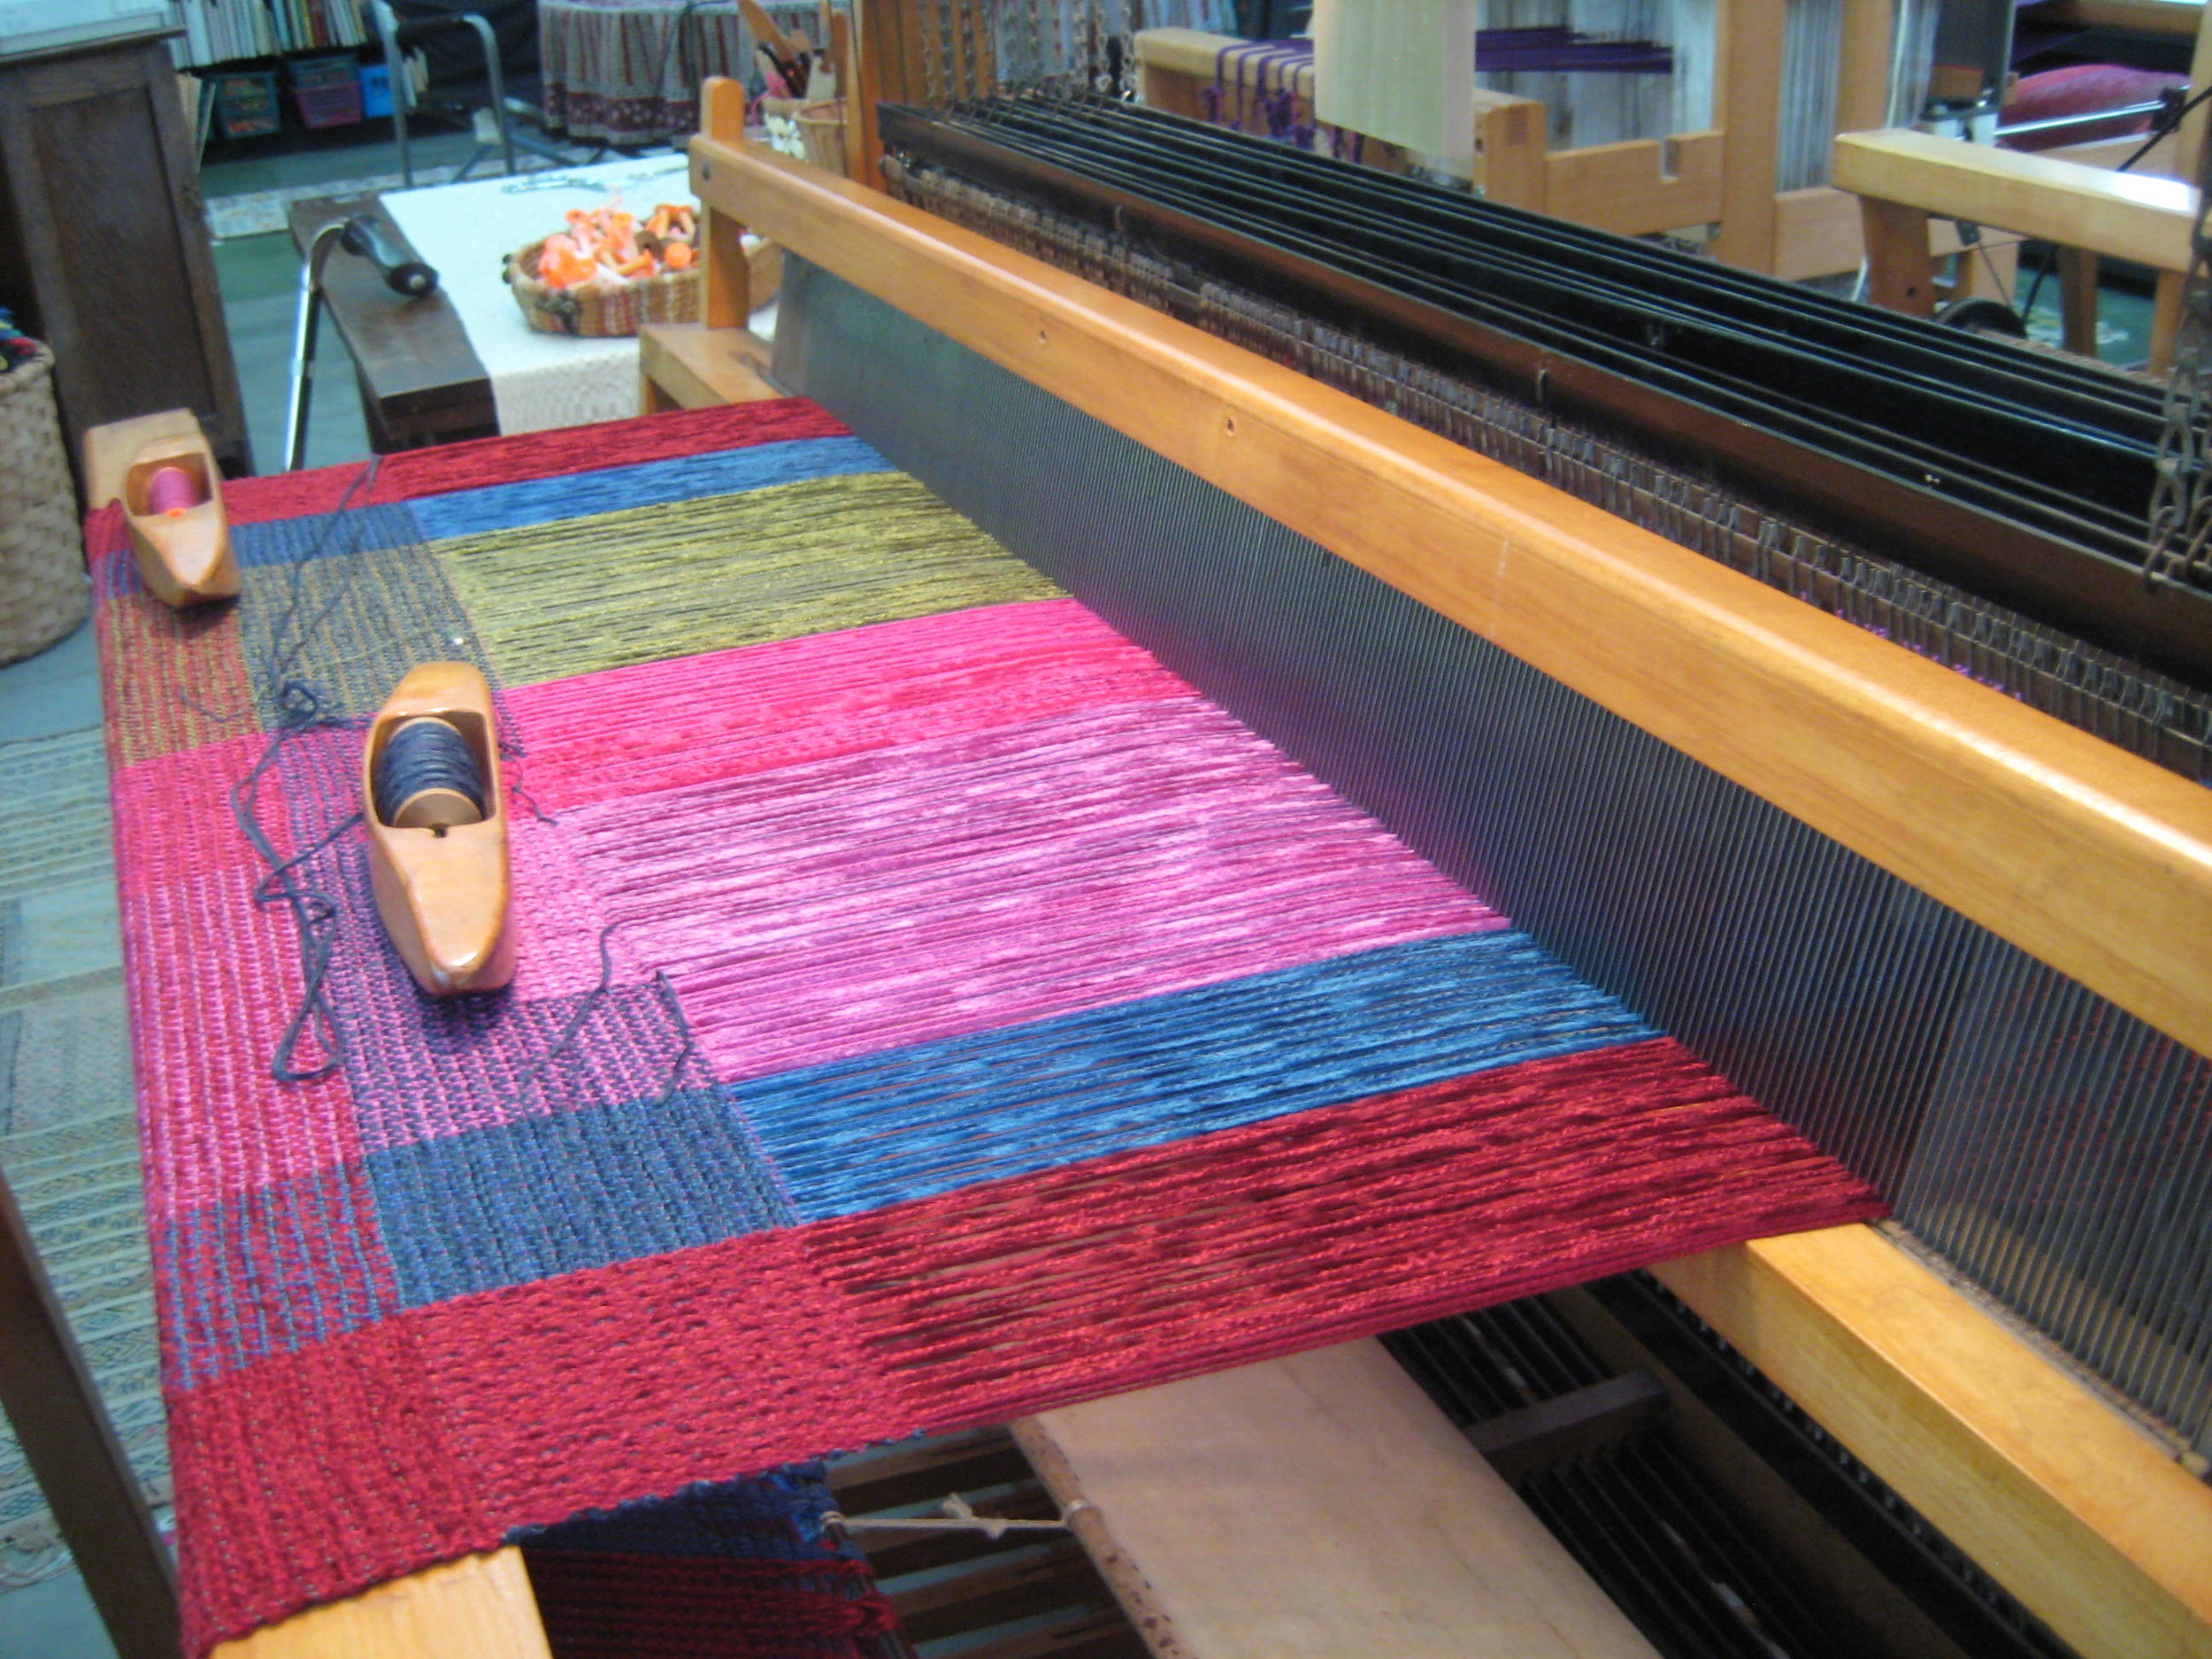 After many hours of preparation the warp is on the loom and weaving can begin.